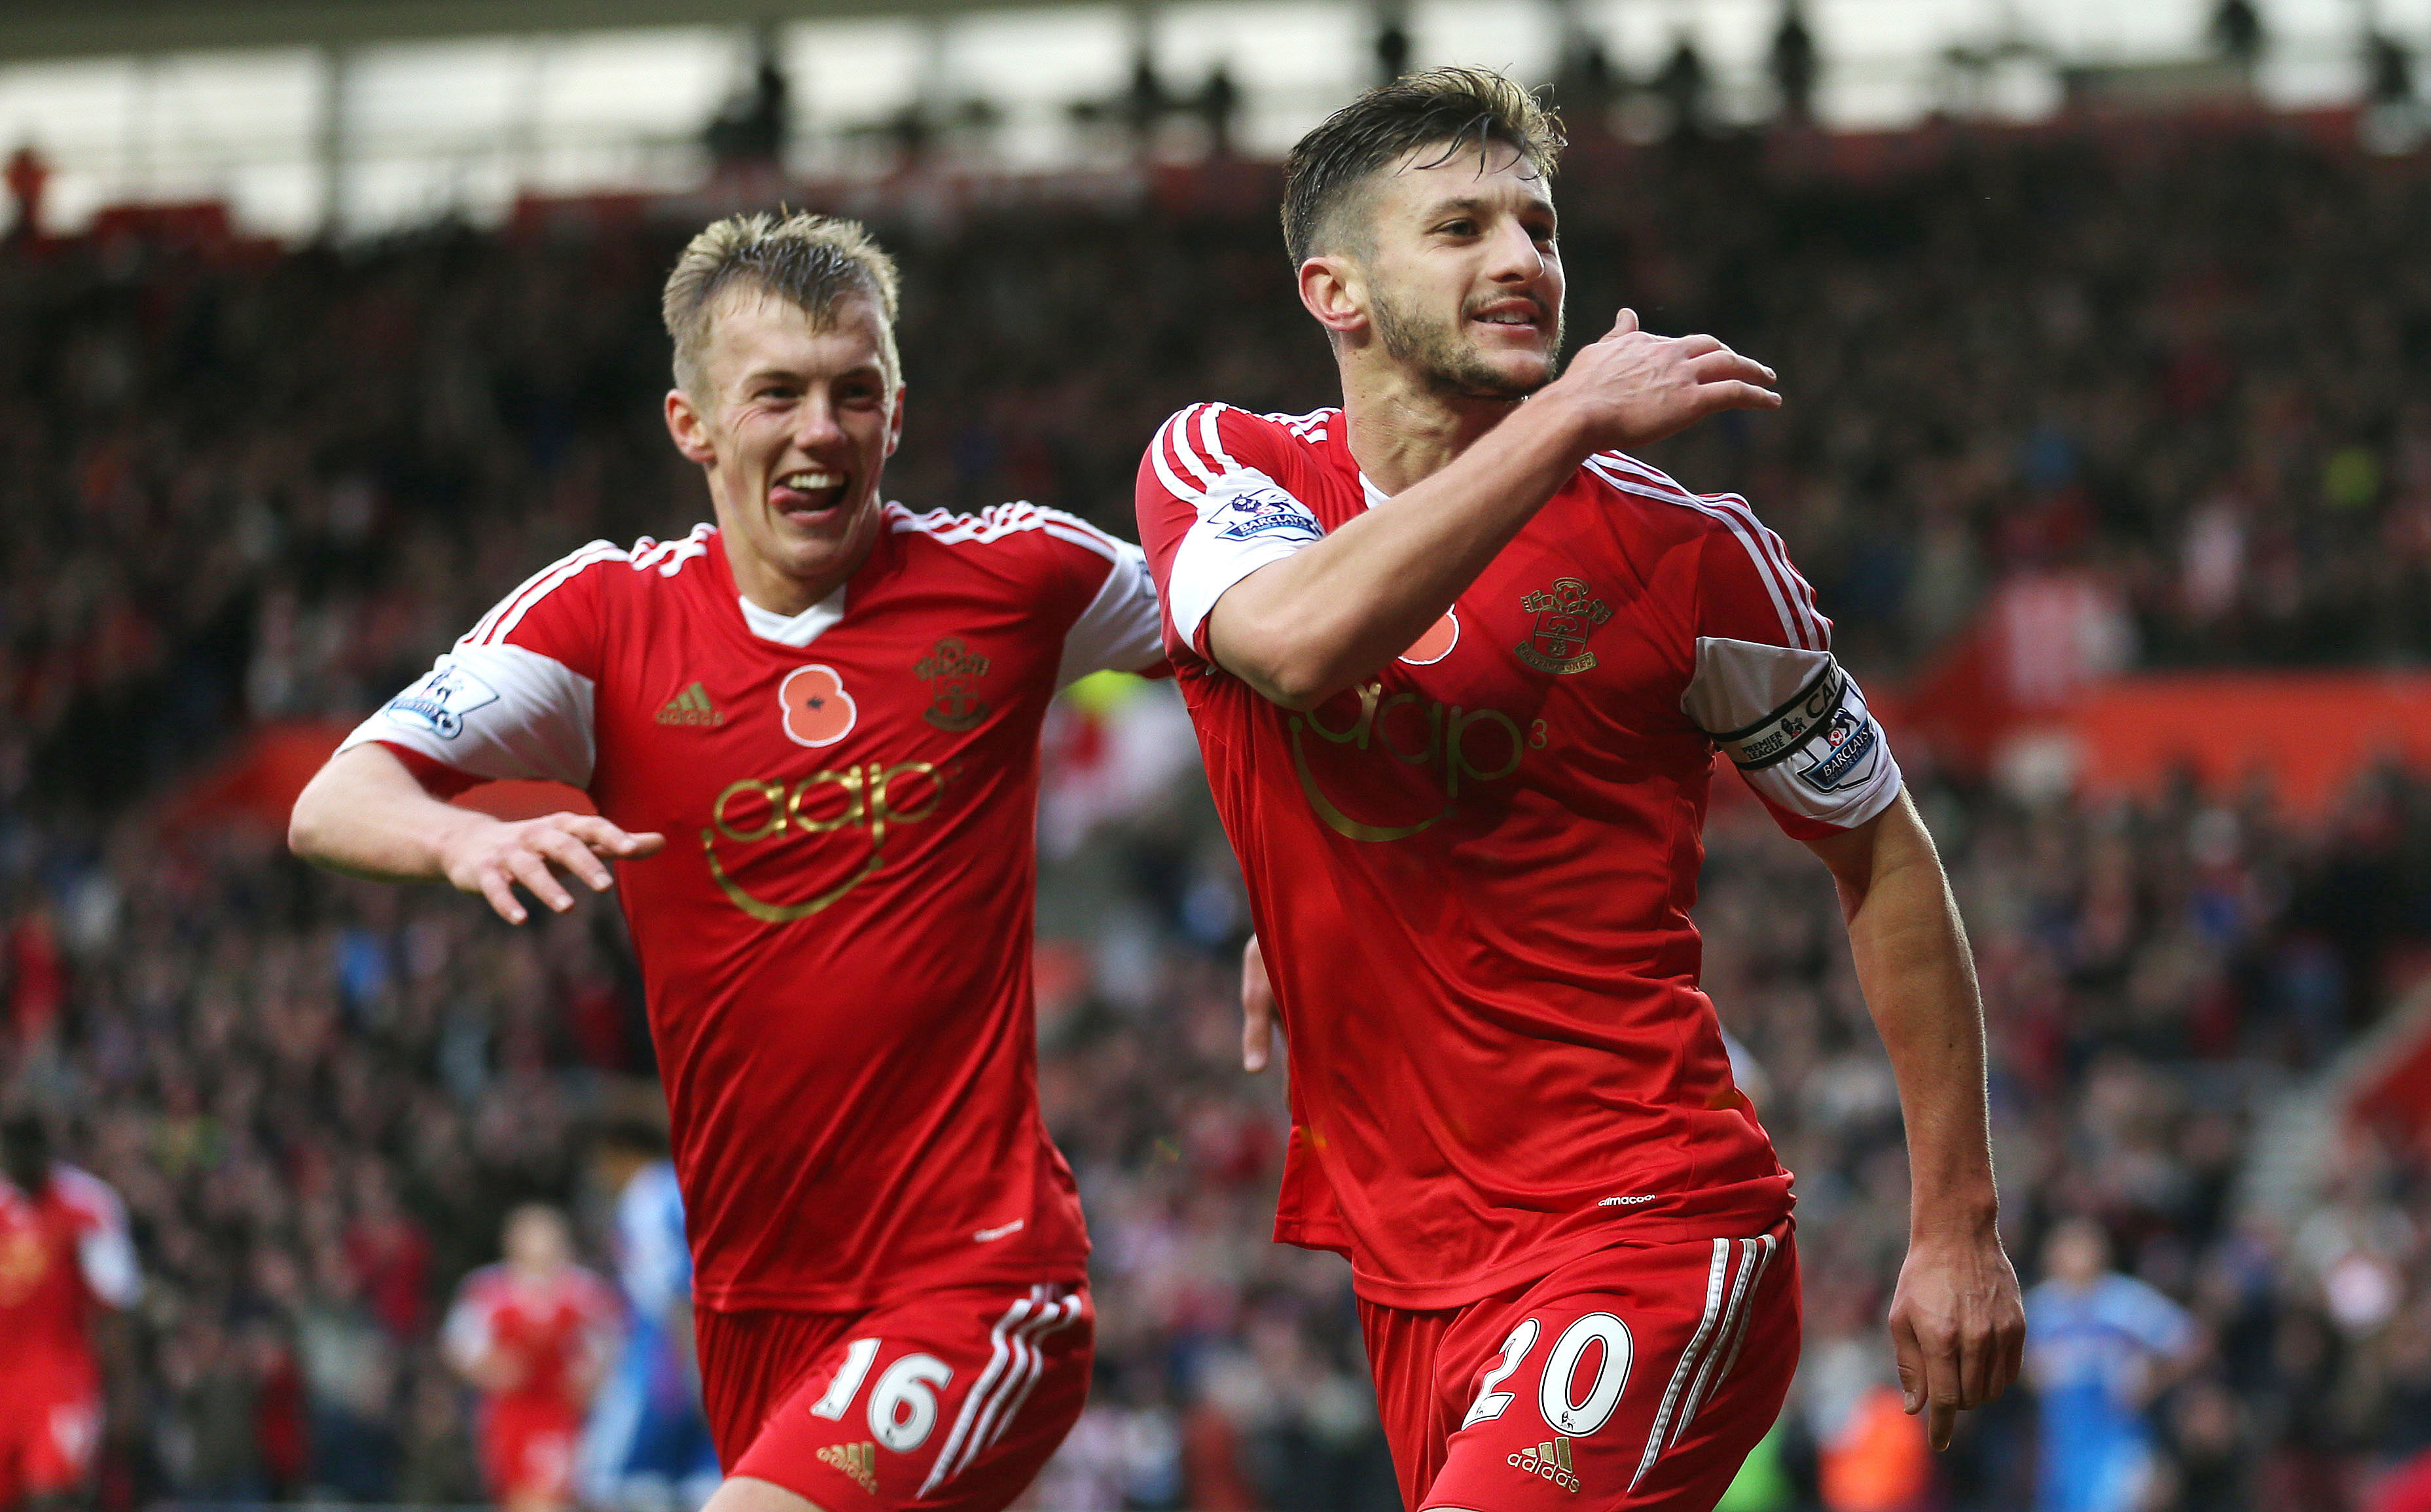 Rumour: Manchester United preparing to make a move for Adam Lallana and Luke Shaw